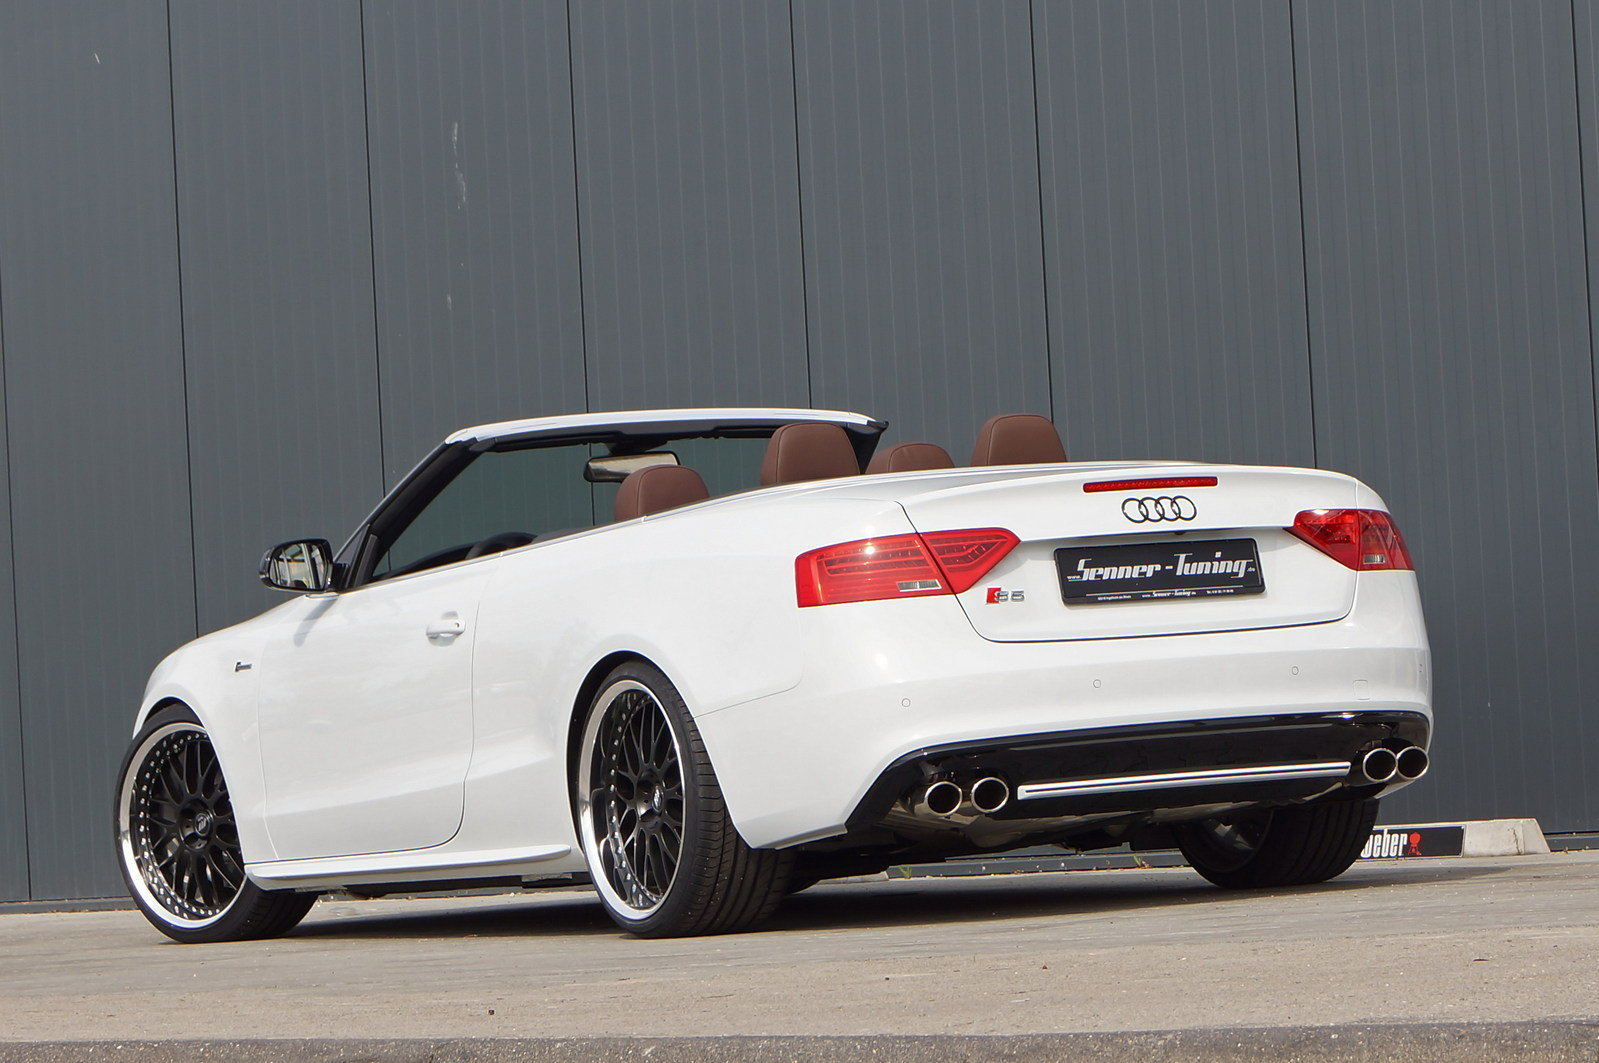 http://pictures.topspeed.com/IMG/crop/201306/audi-s5-convertible-_1600x0w.jpg